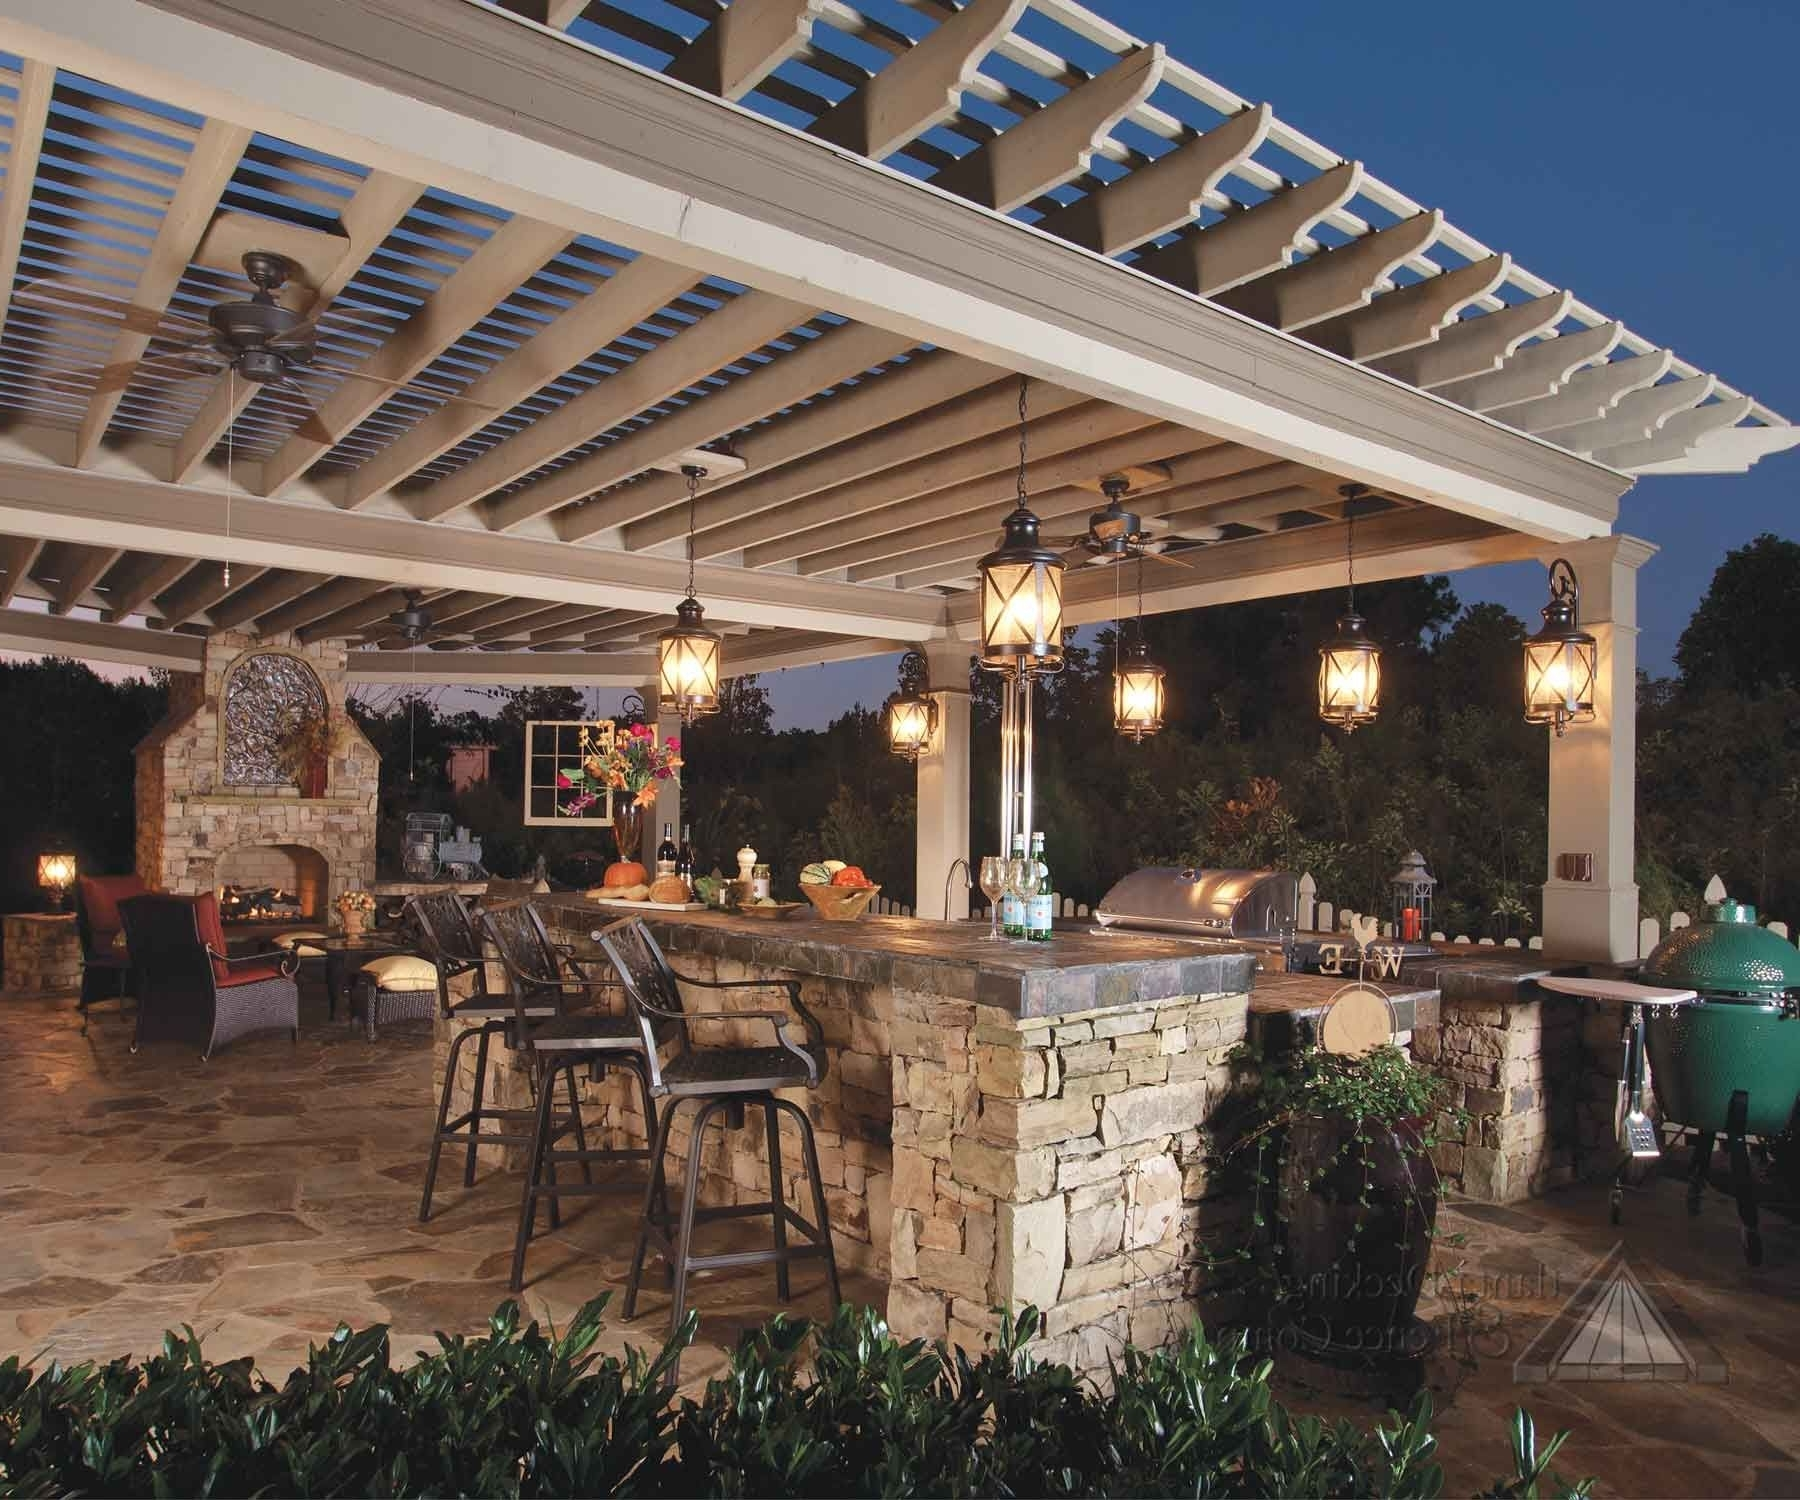 Outdoor Ceiling Fans Under Pergola For 2019 The Serving Area May Have A Raised Bar With Stools To Allow Guests (View 14 of 20)